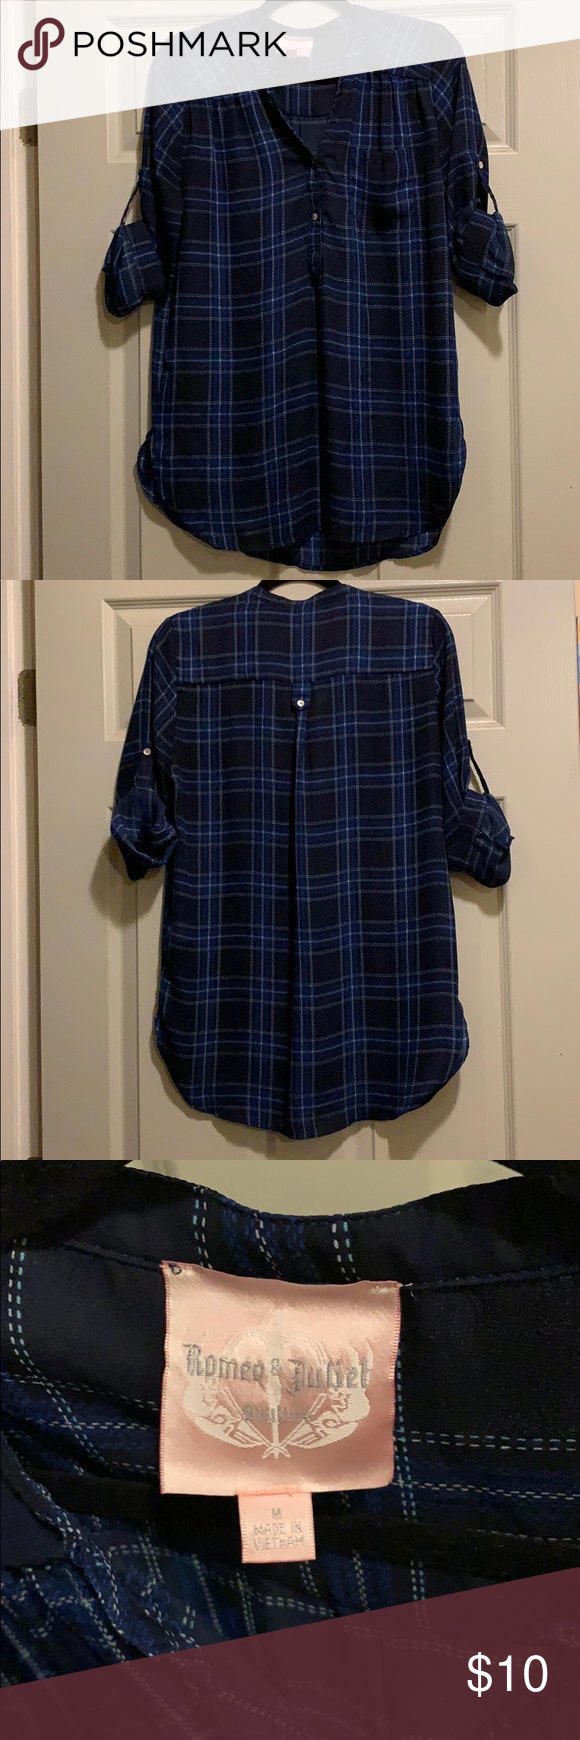 cc17f55f52b Flannel Tunic Blouse *Gently used. Minor flaws see last 2 photos. *Tunic